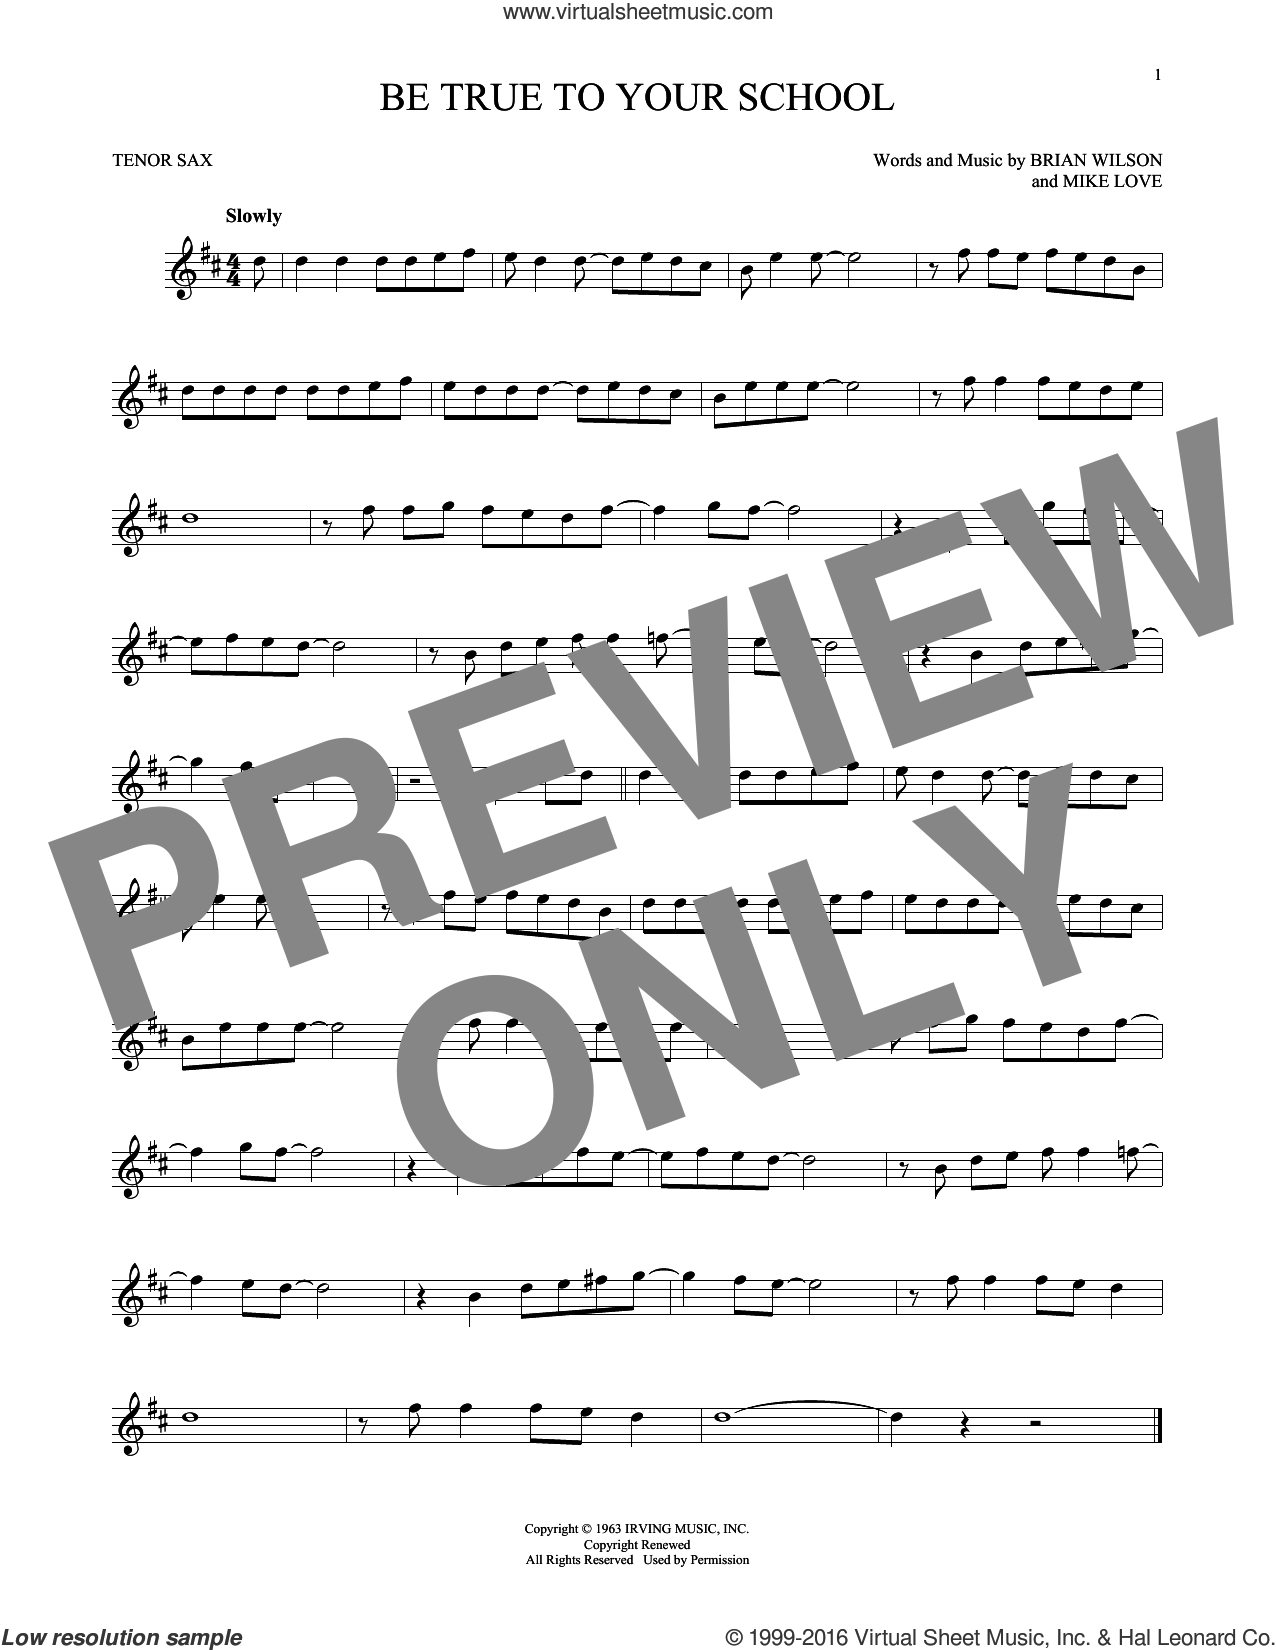 Be True To Your School sheet music for tenor saxophone solo by Mike Love, The Beach Boys and Brian Wilson. Score Image Preview.